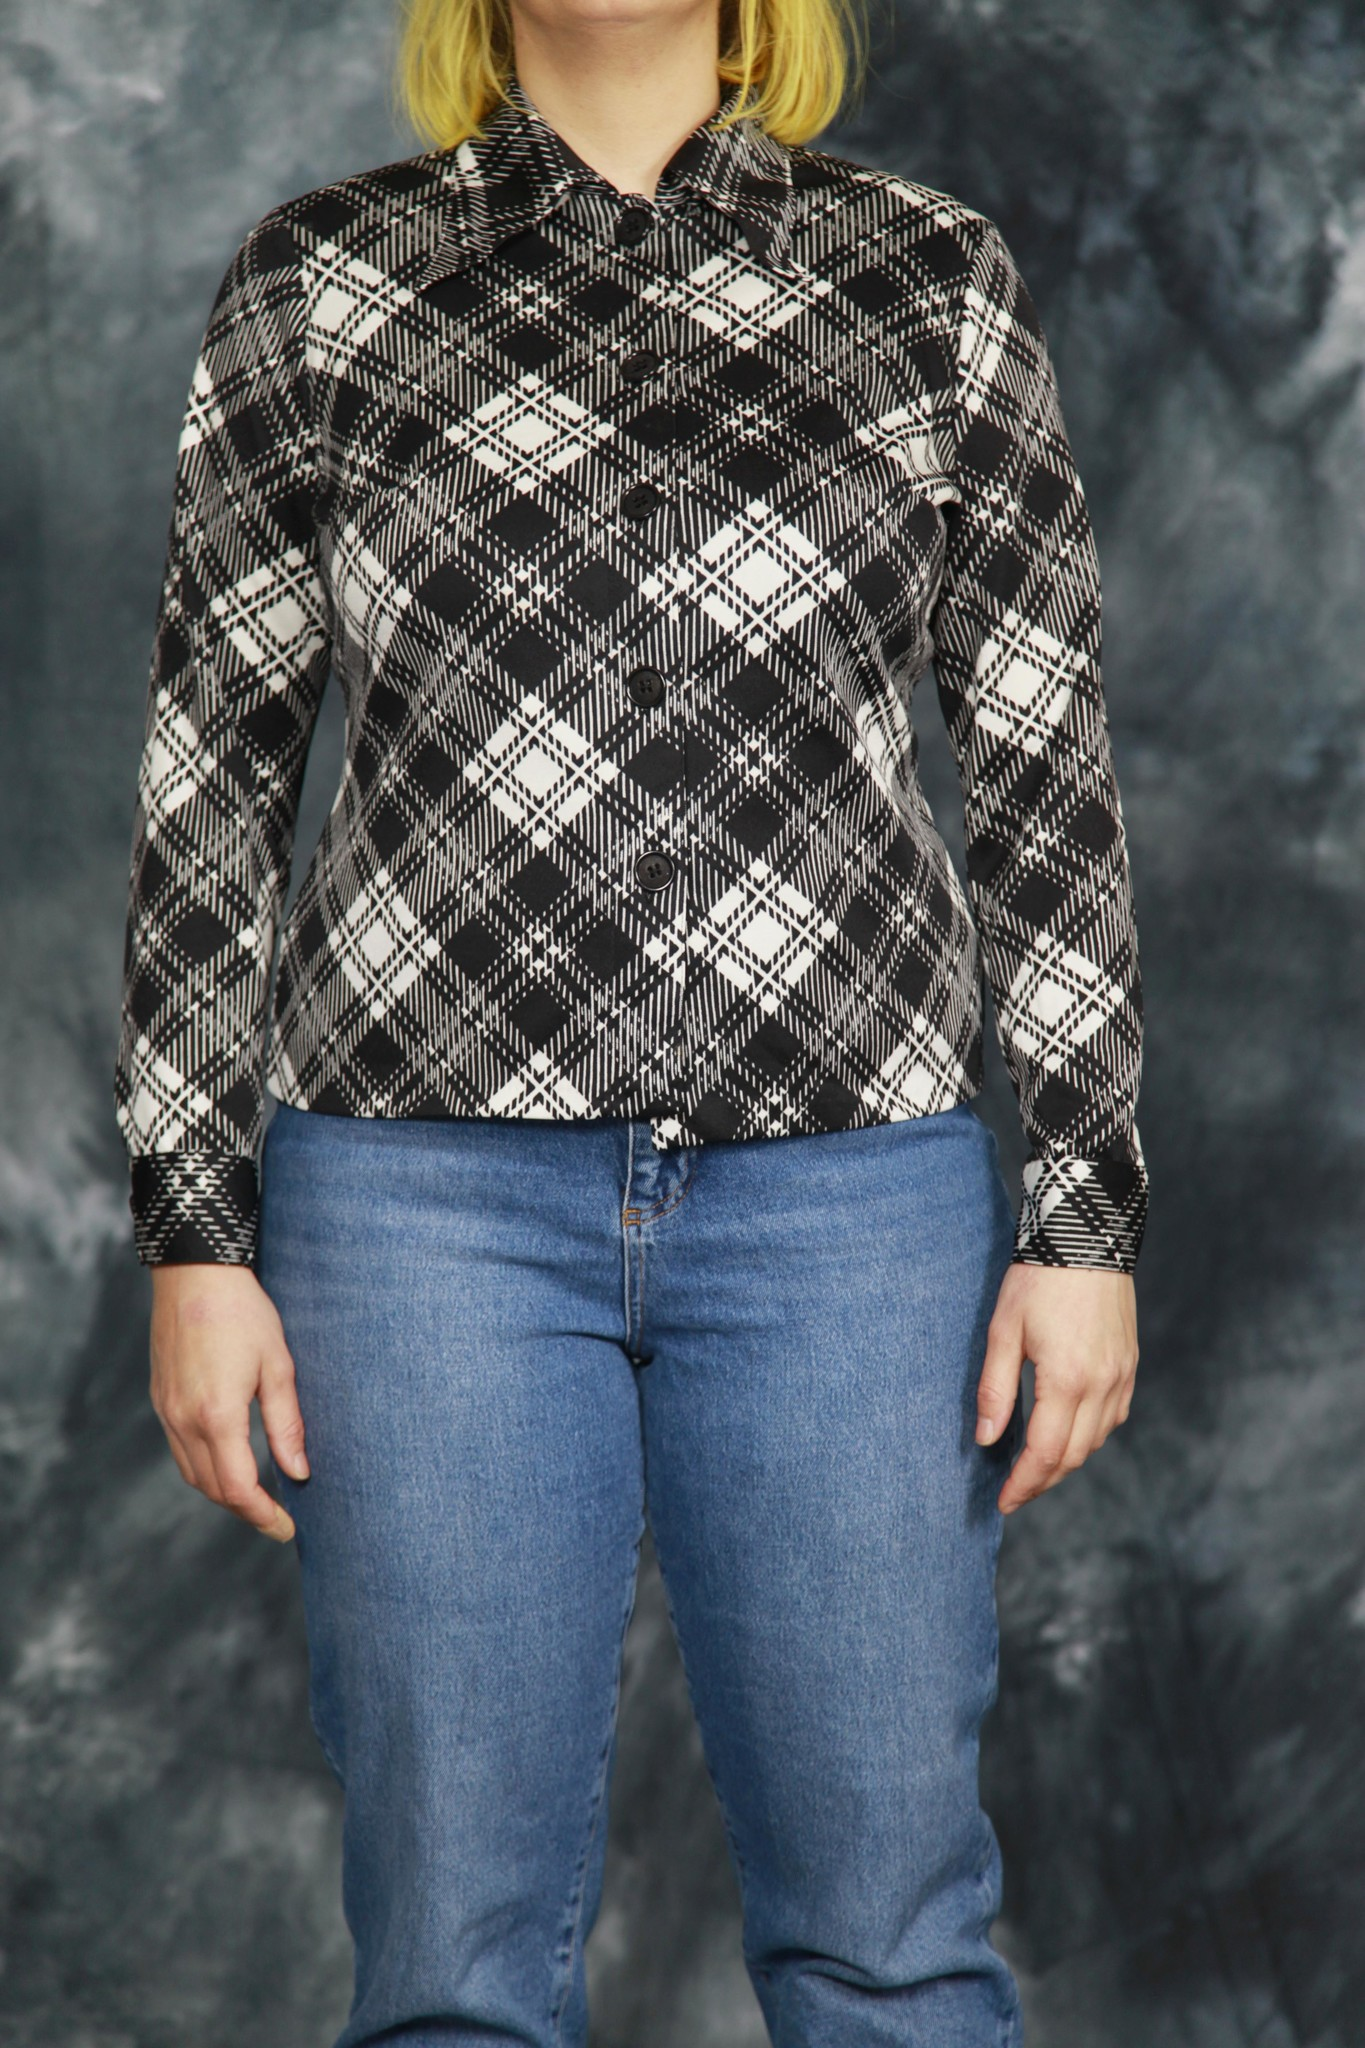 Beautiful 70s blouse with black and white plaid pattern